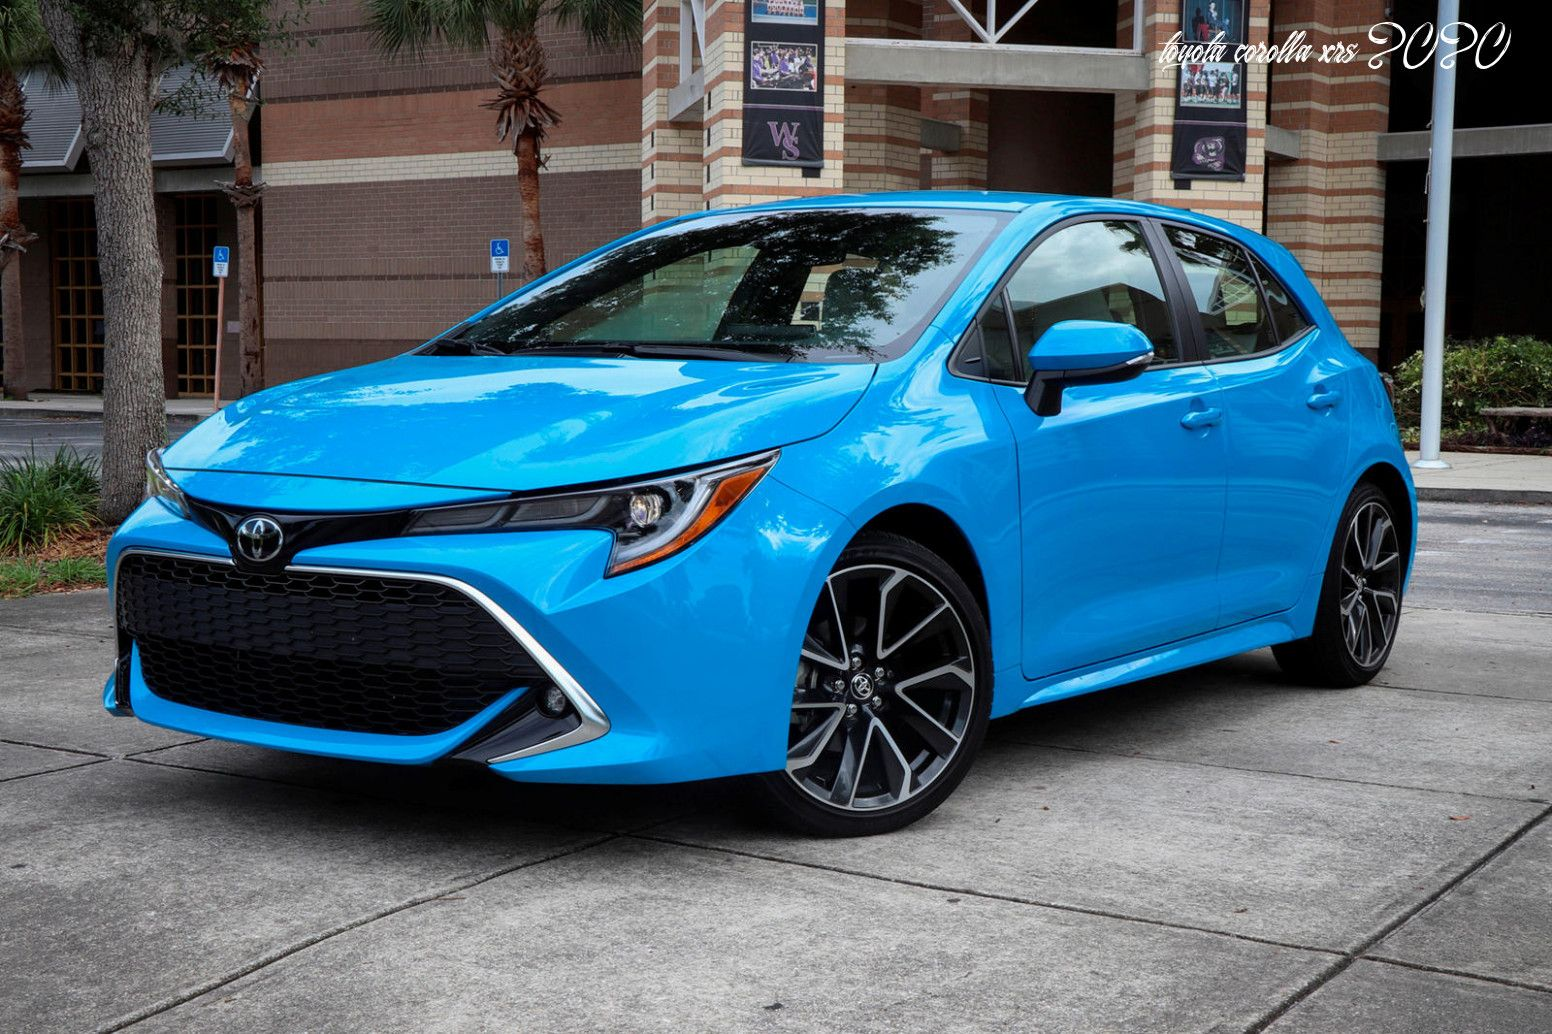 Toyota Corolla Xrs 2020 Check more at https//jeepcar2019